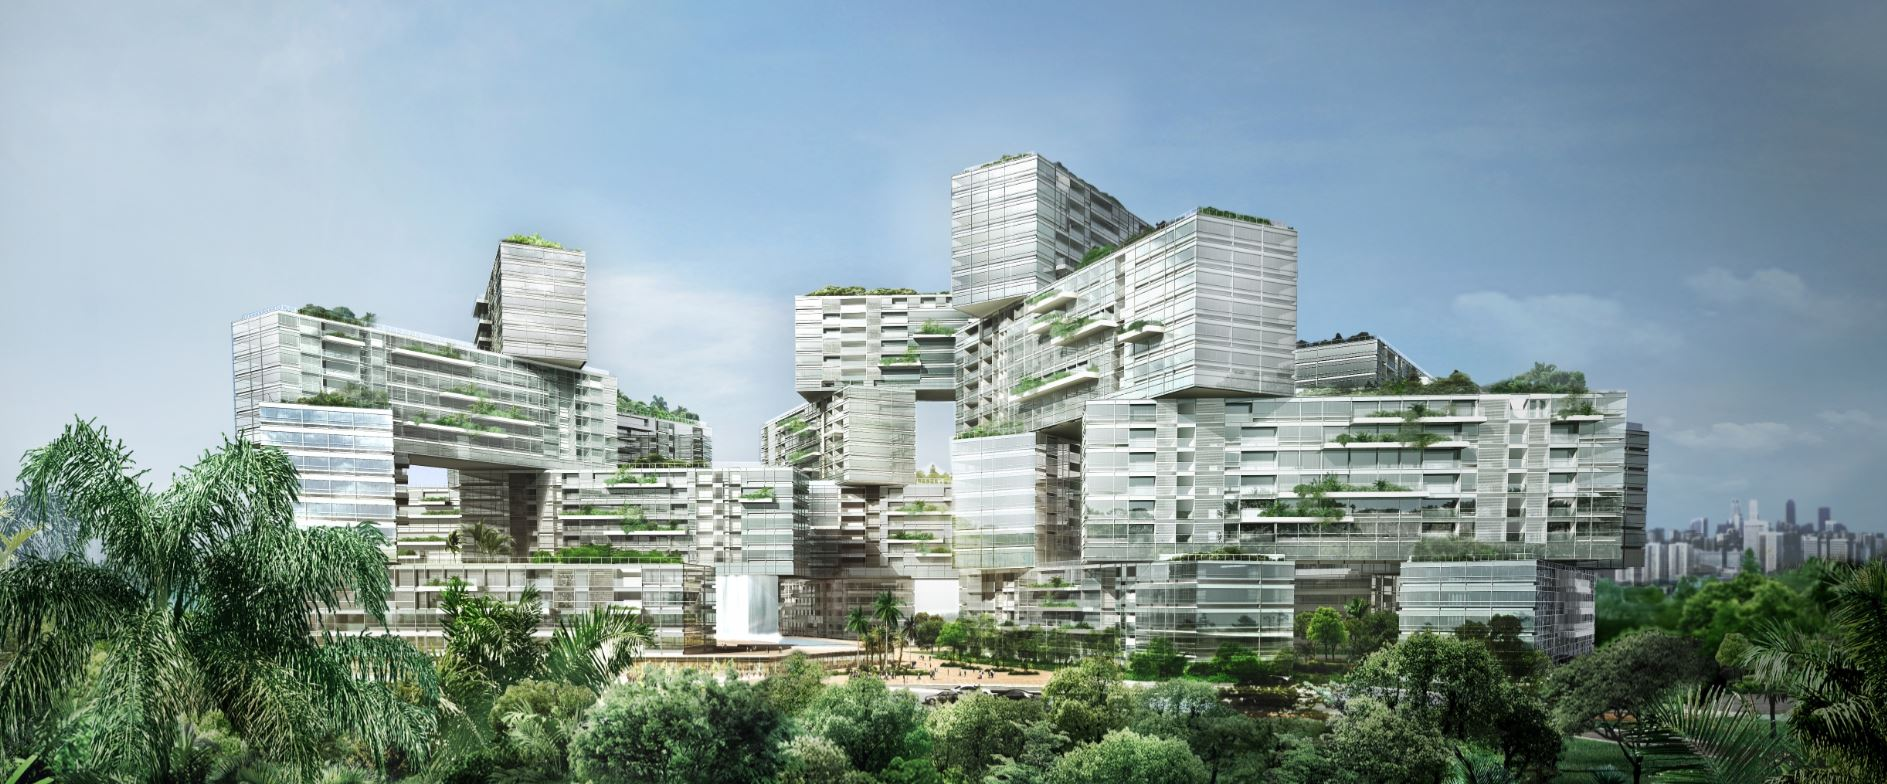 The Interlace Facade 2